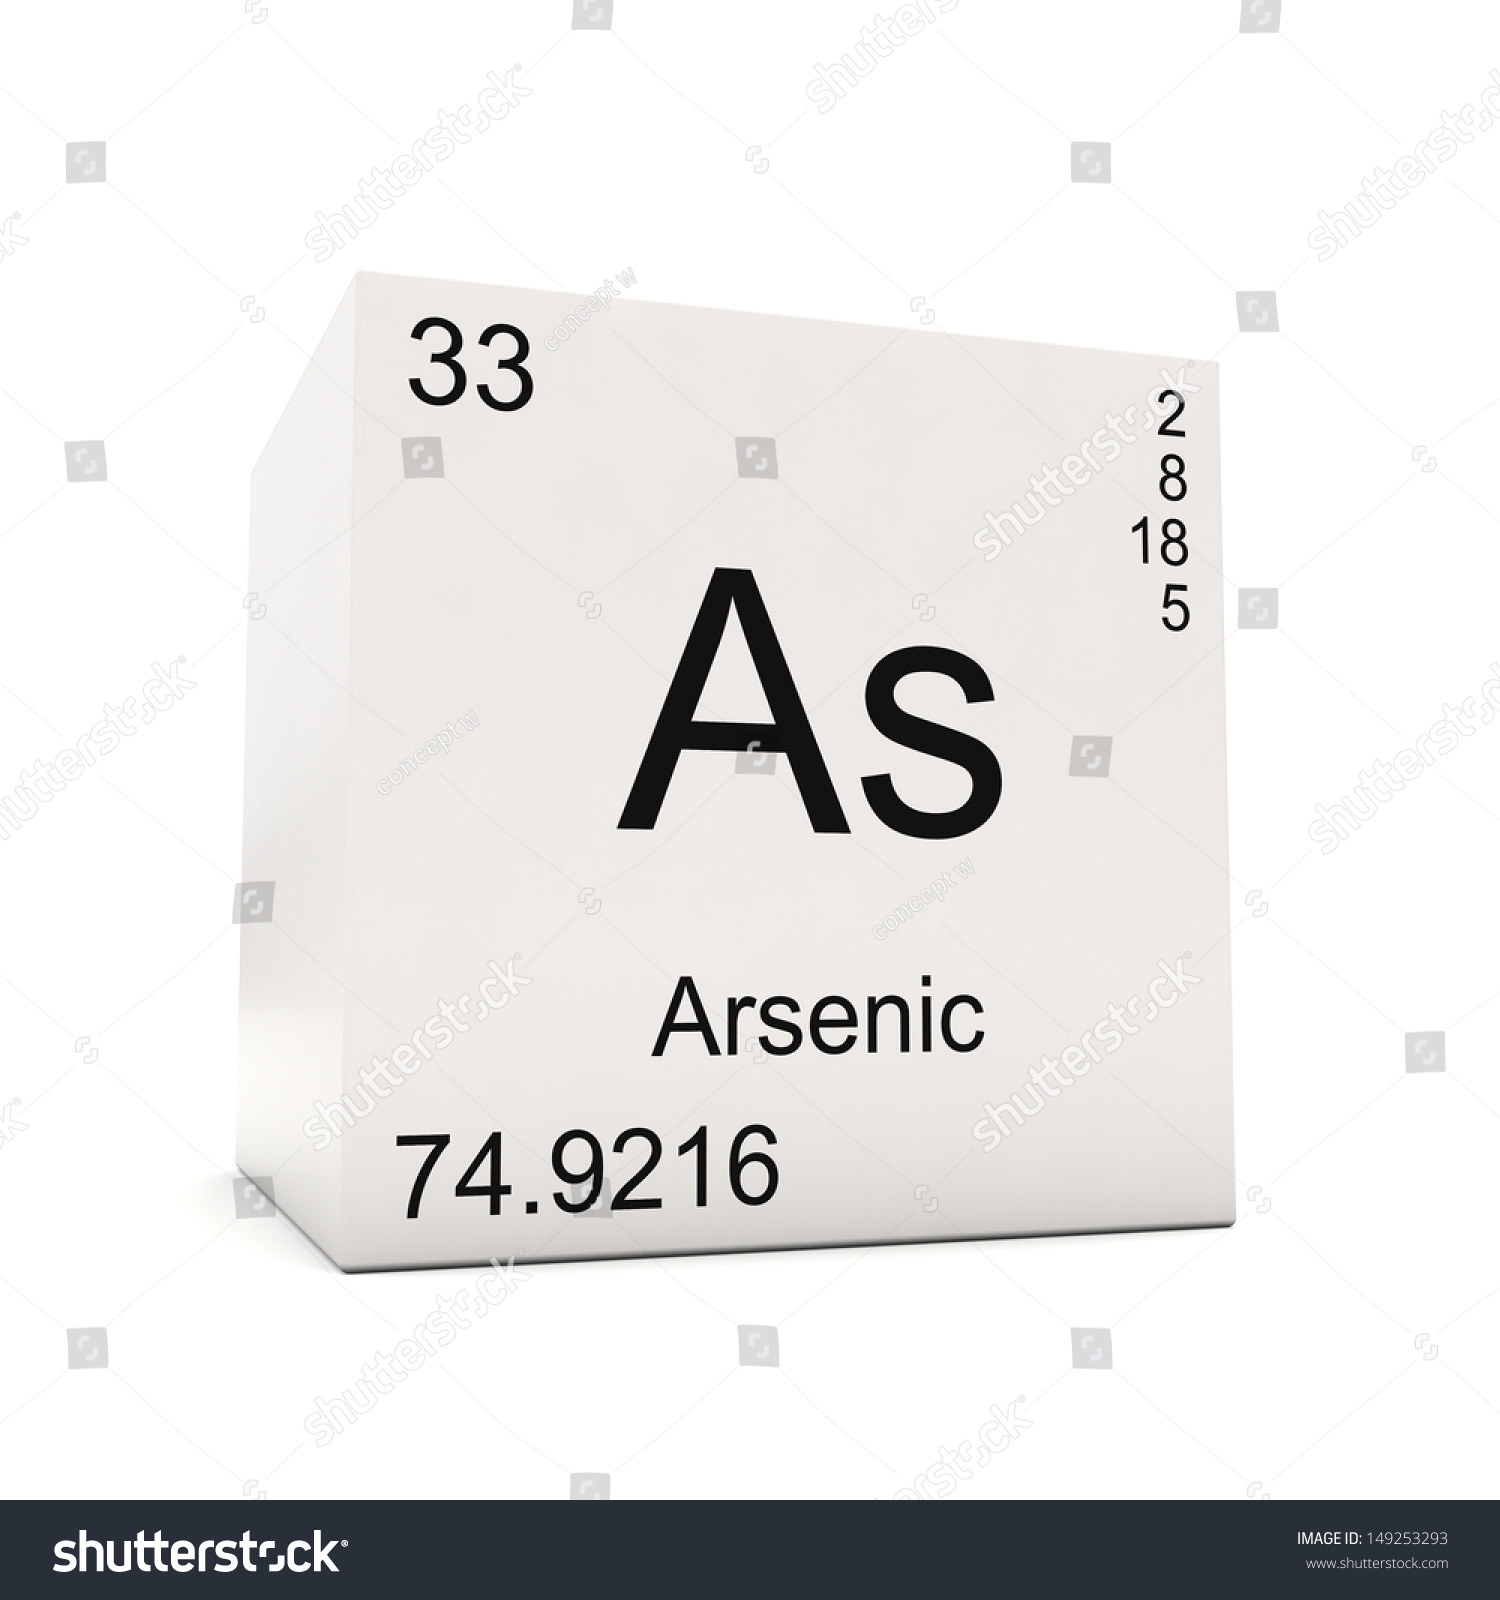 Cube arsenic element periodic table isolated stock illustration cube of arsenic element of the periodic table isolated on white background biocorpaavc Image collections